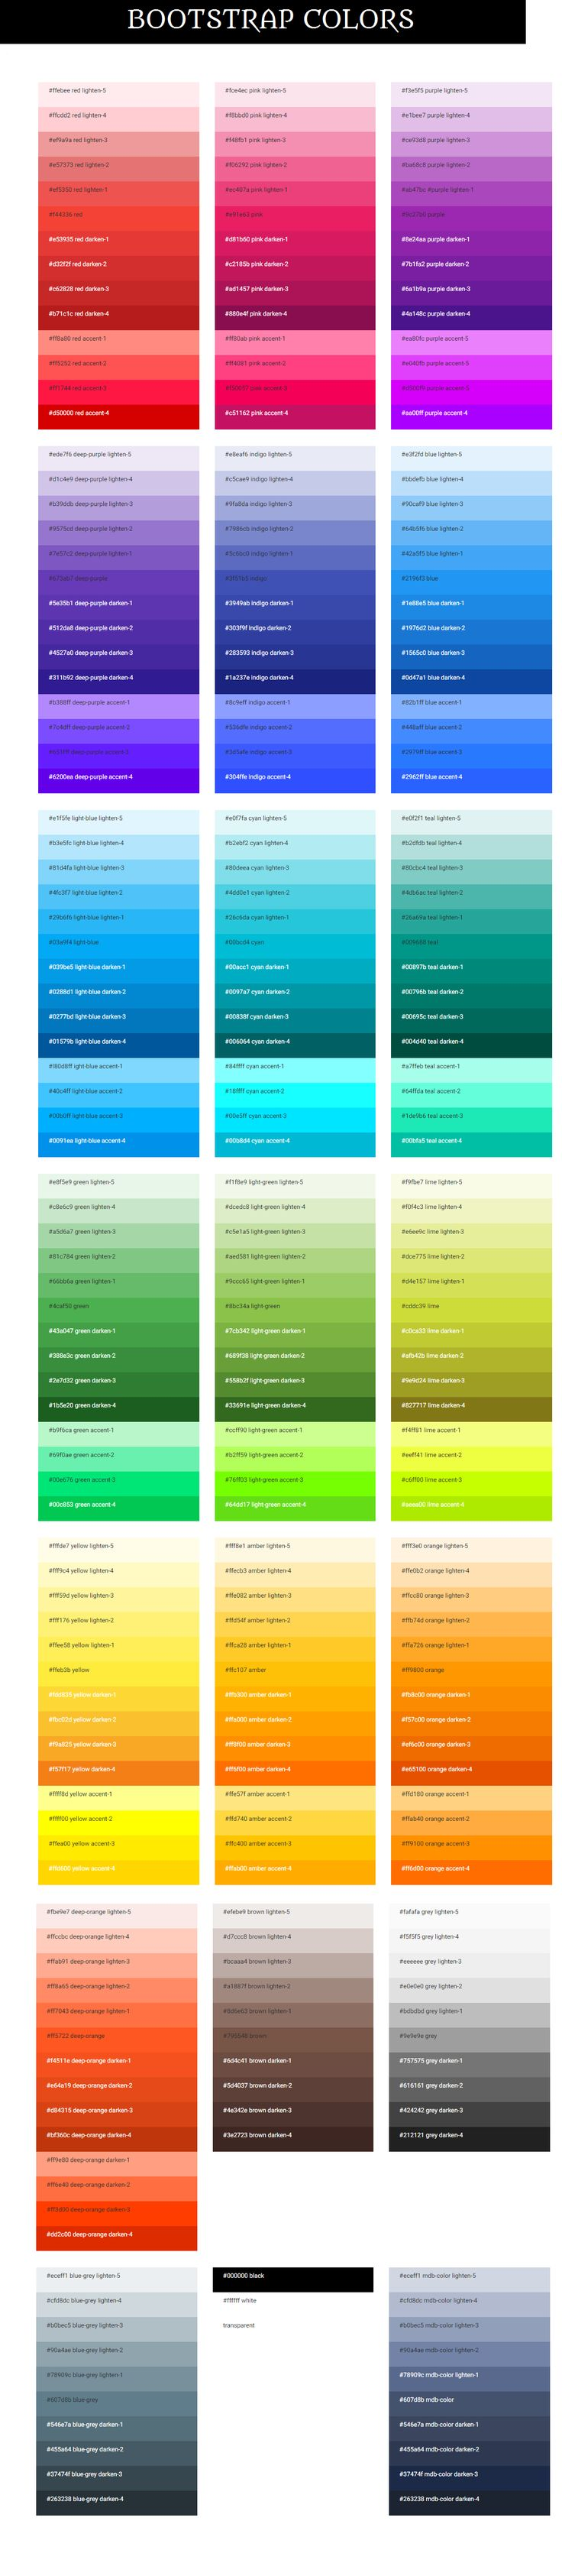 32 best flat ui colors images on pinterest collar pattern color bootstrap full palette colors each color might be exposed in various tones varying from bright to dark they all are collated in accessible section geenschuldenfo Gallery